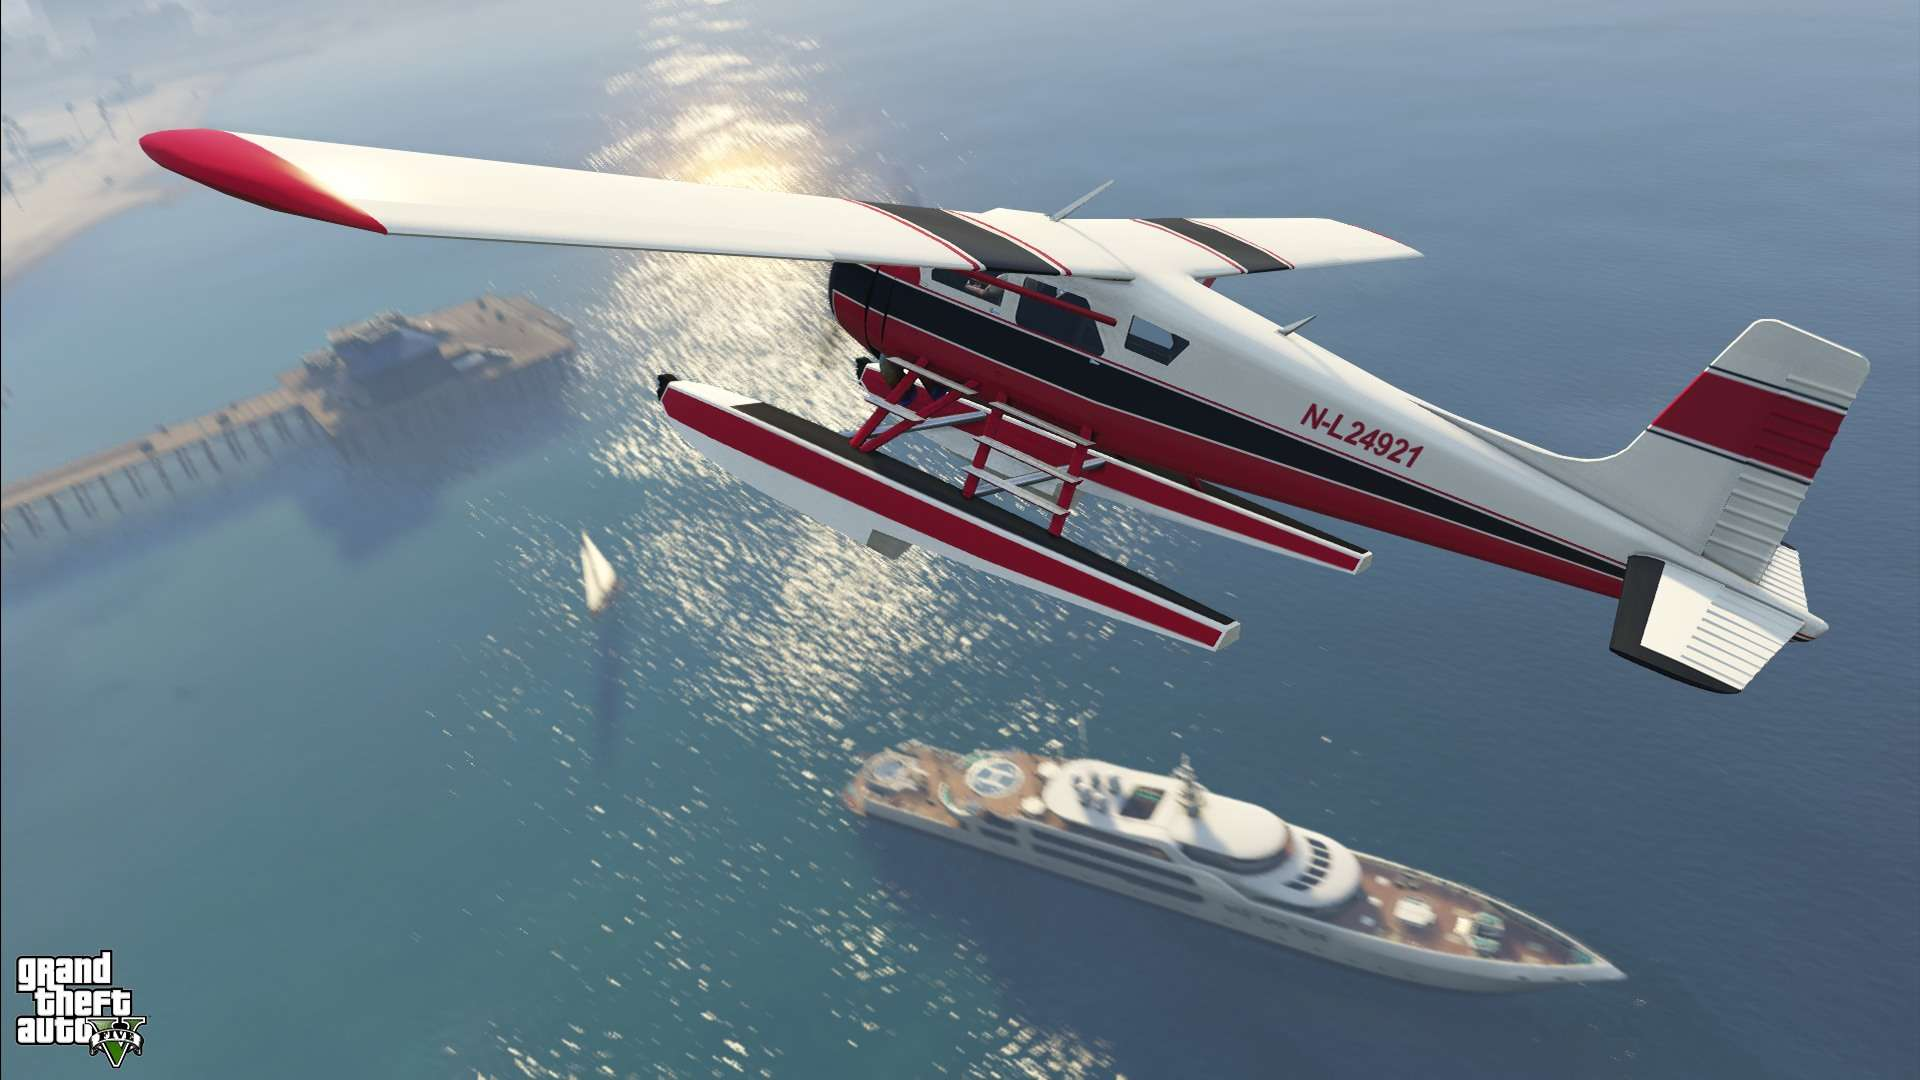 Game Grand Theft Auto V Wallpaper 043